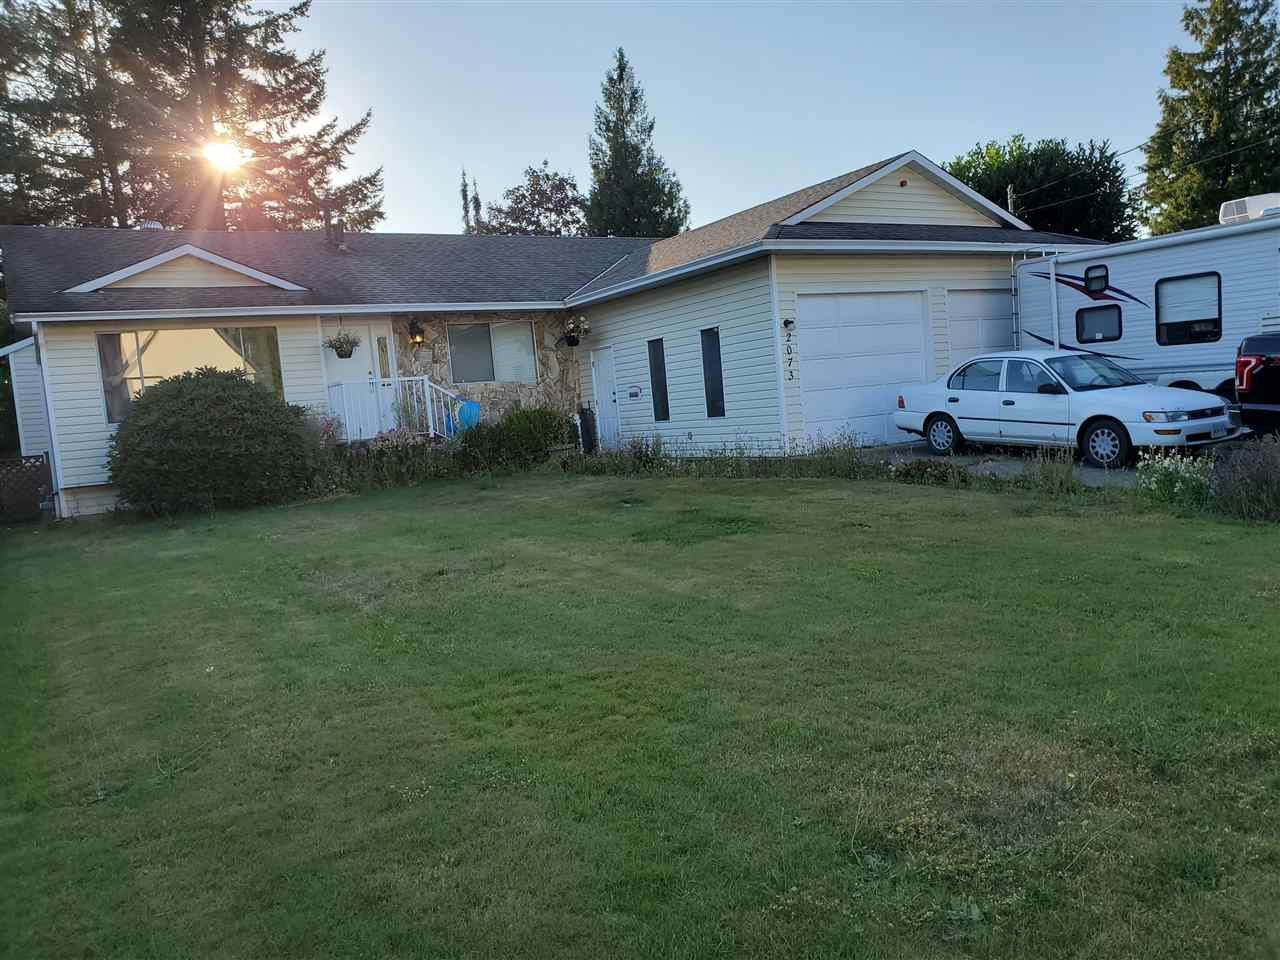 Main Photo: 2073 WILEROSE Street in Abbotsford: Central Abbotsford House for sale : MLS®# R2481917